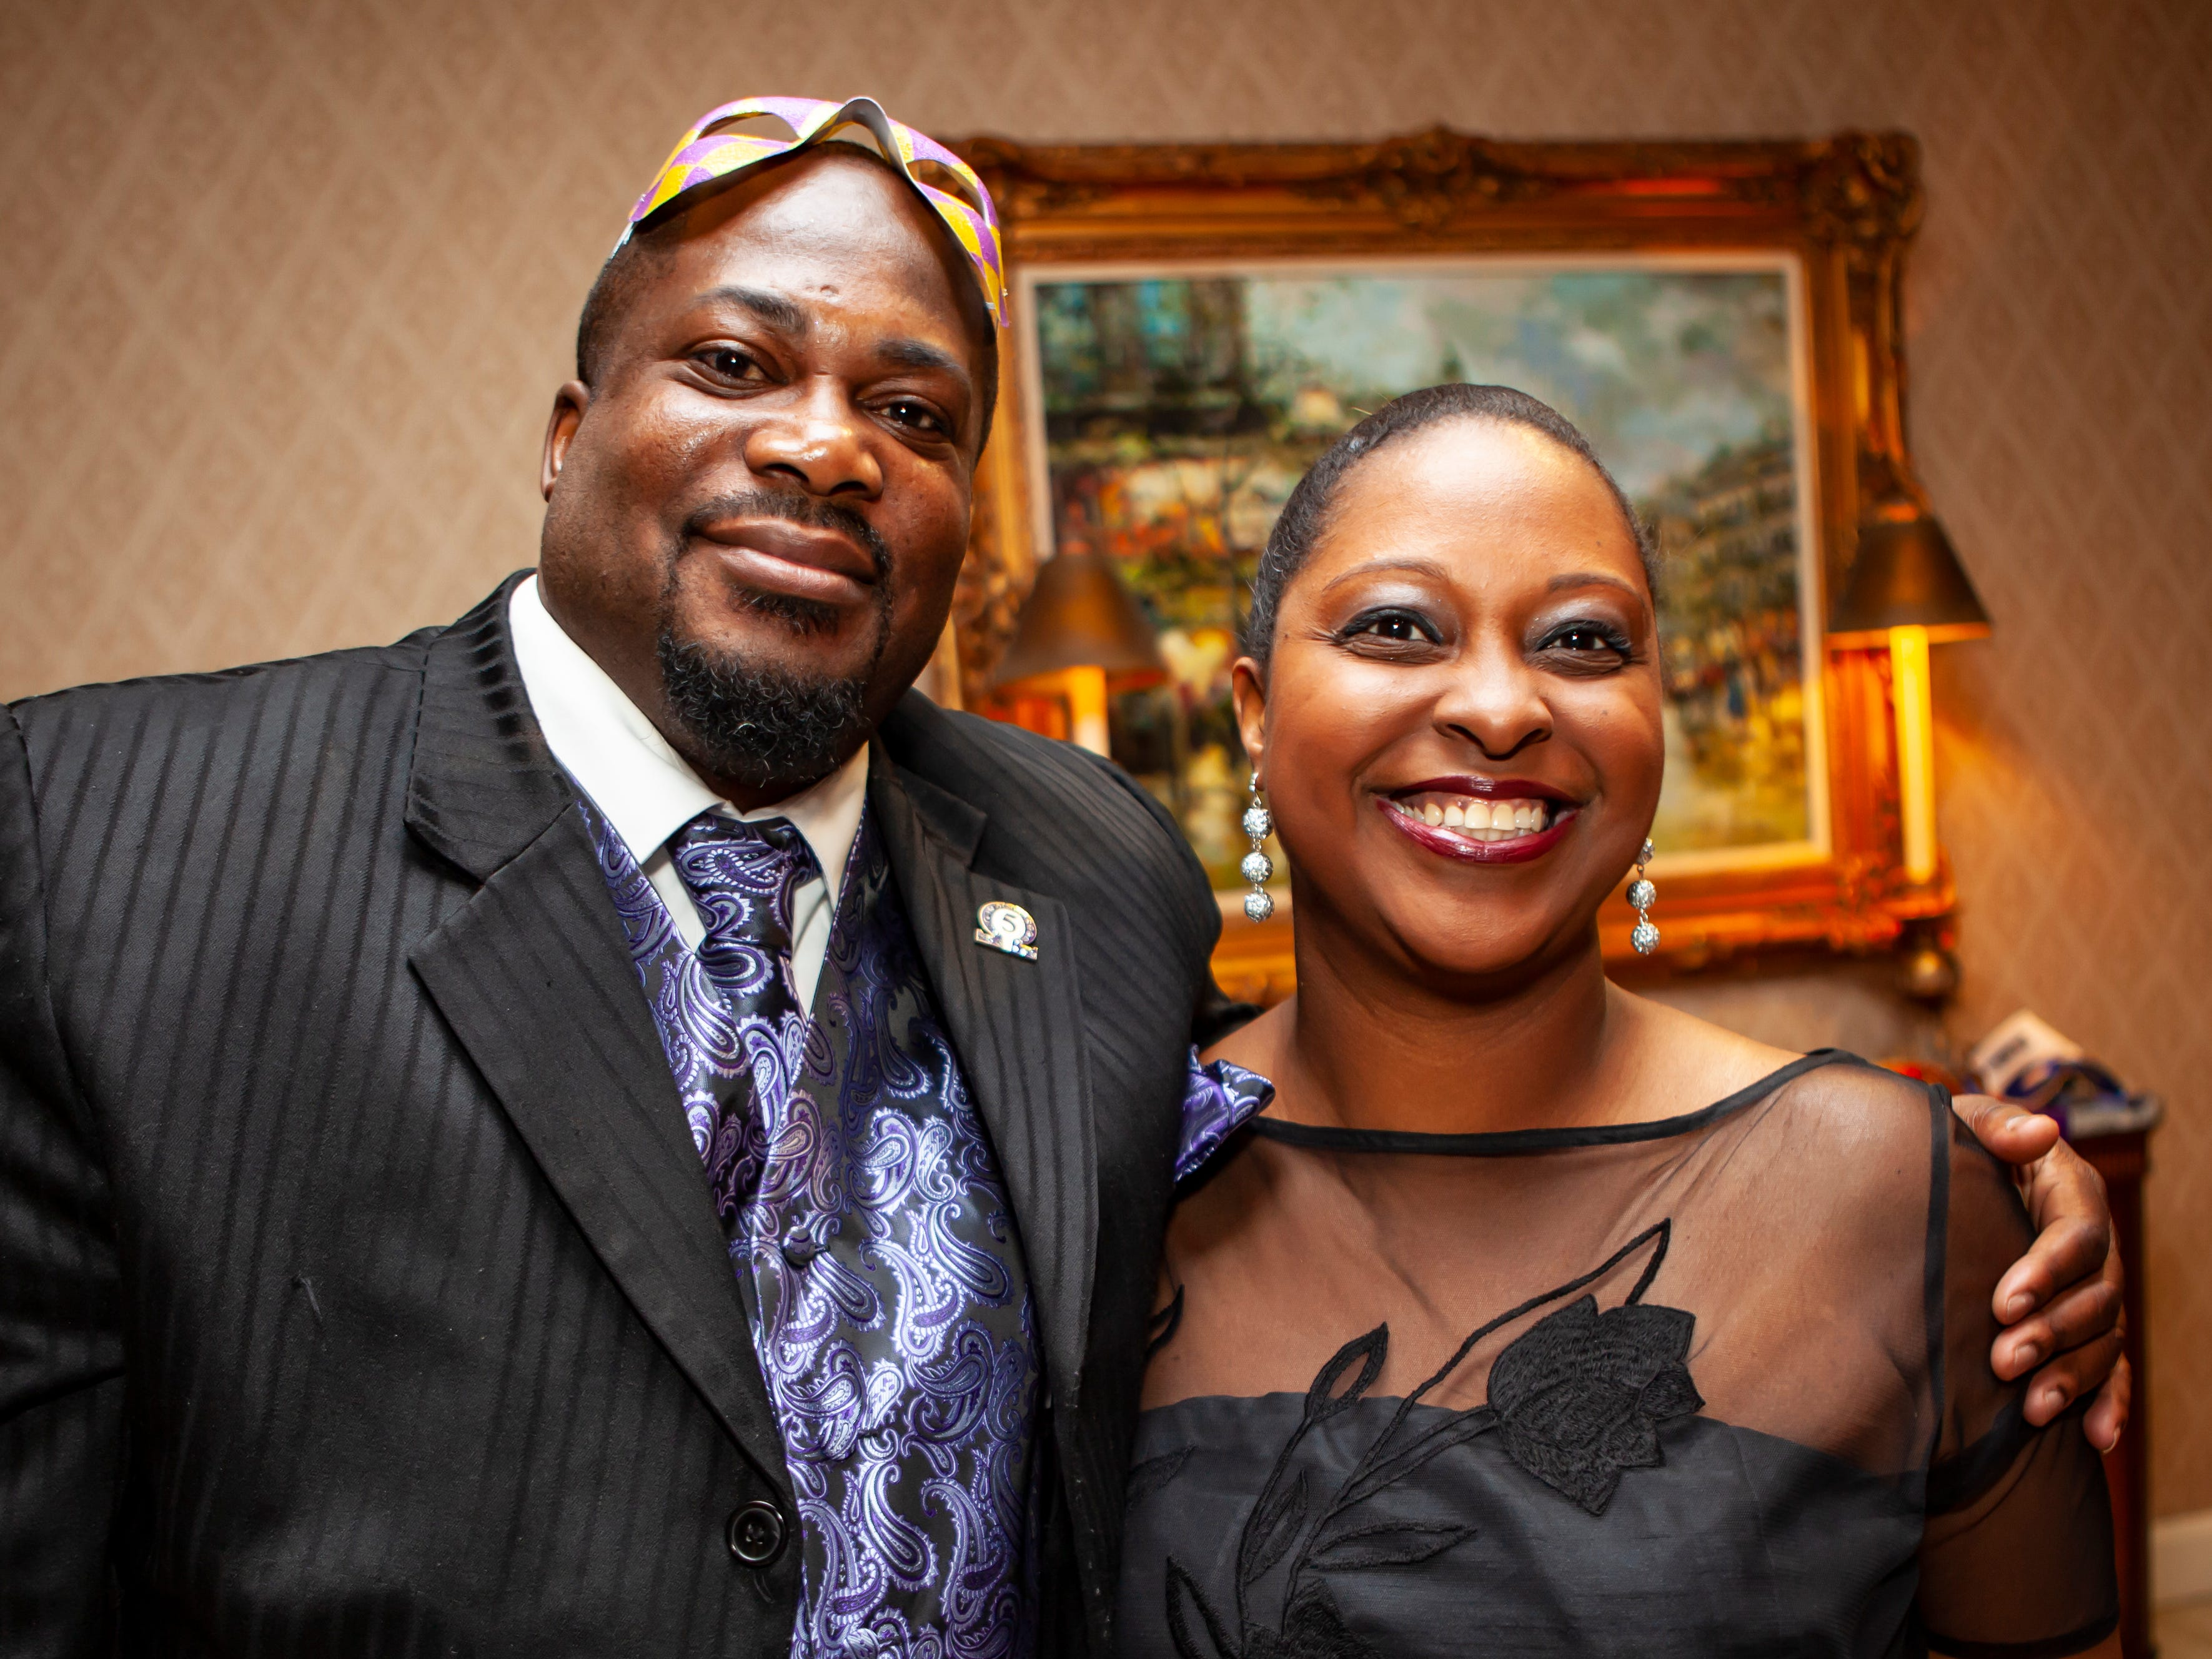 Eric Turner and Mealand Ragland-Hudgins at the Omega Psi Phi Mardi Gras Party, held Saturday, Feb. 9 at Stones River Country Club in Murfreesboro.